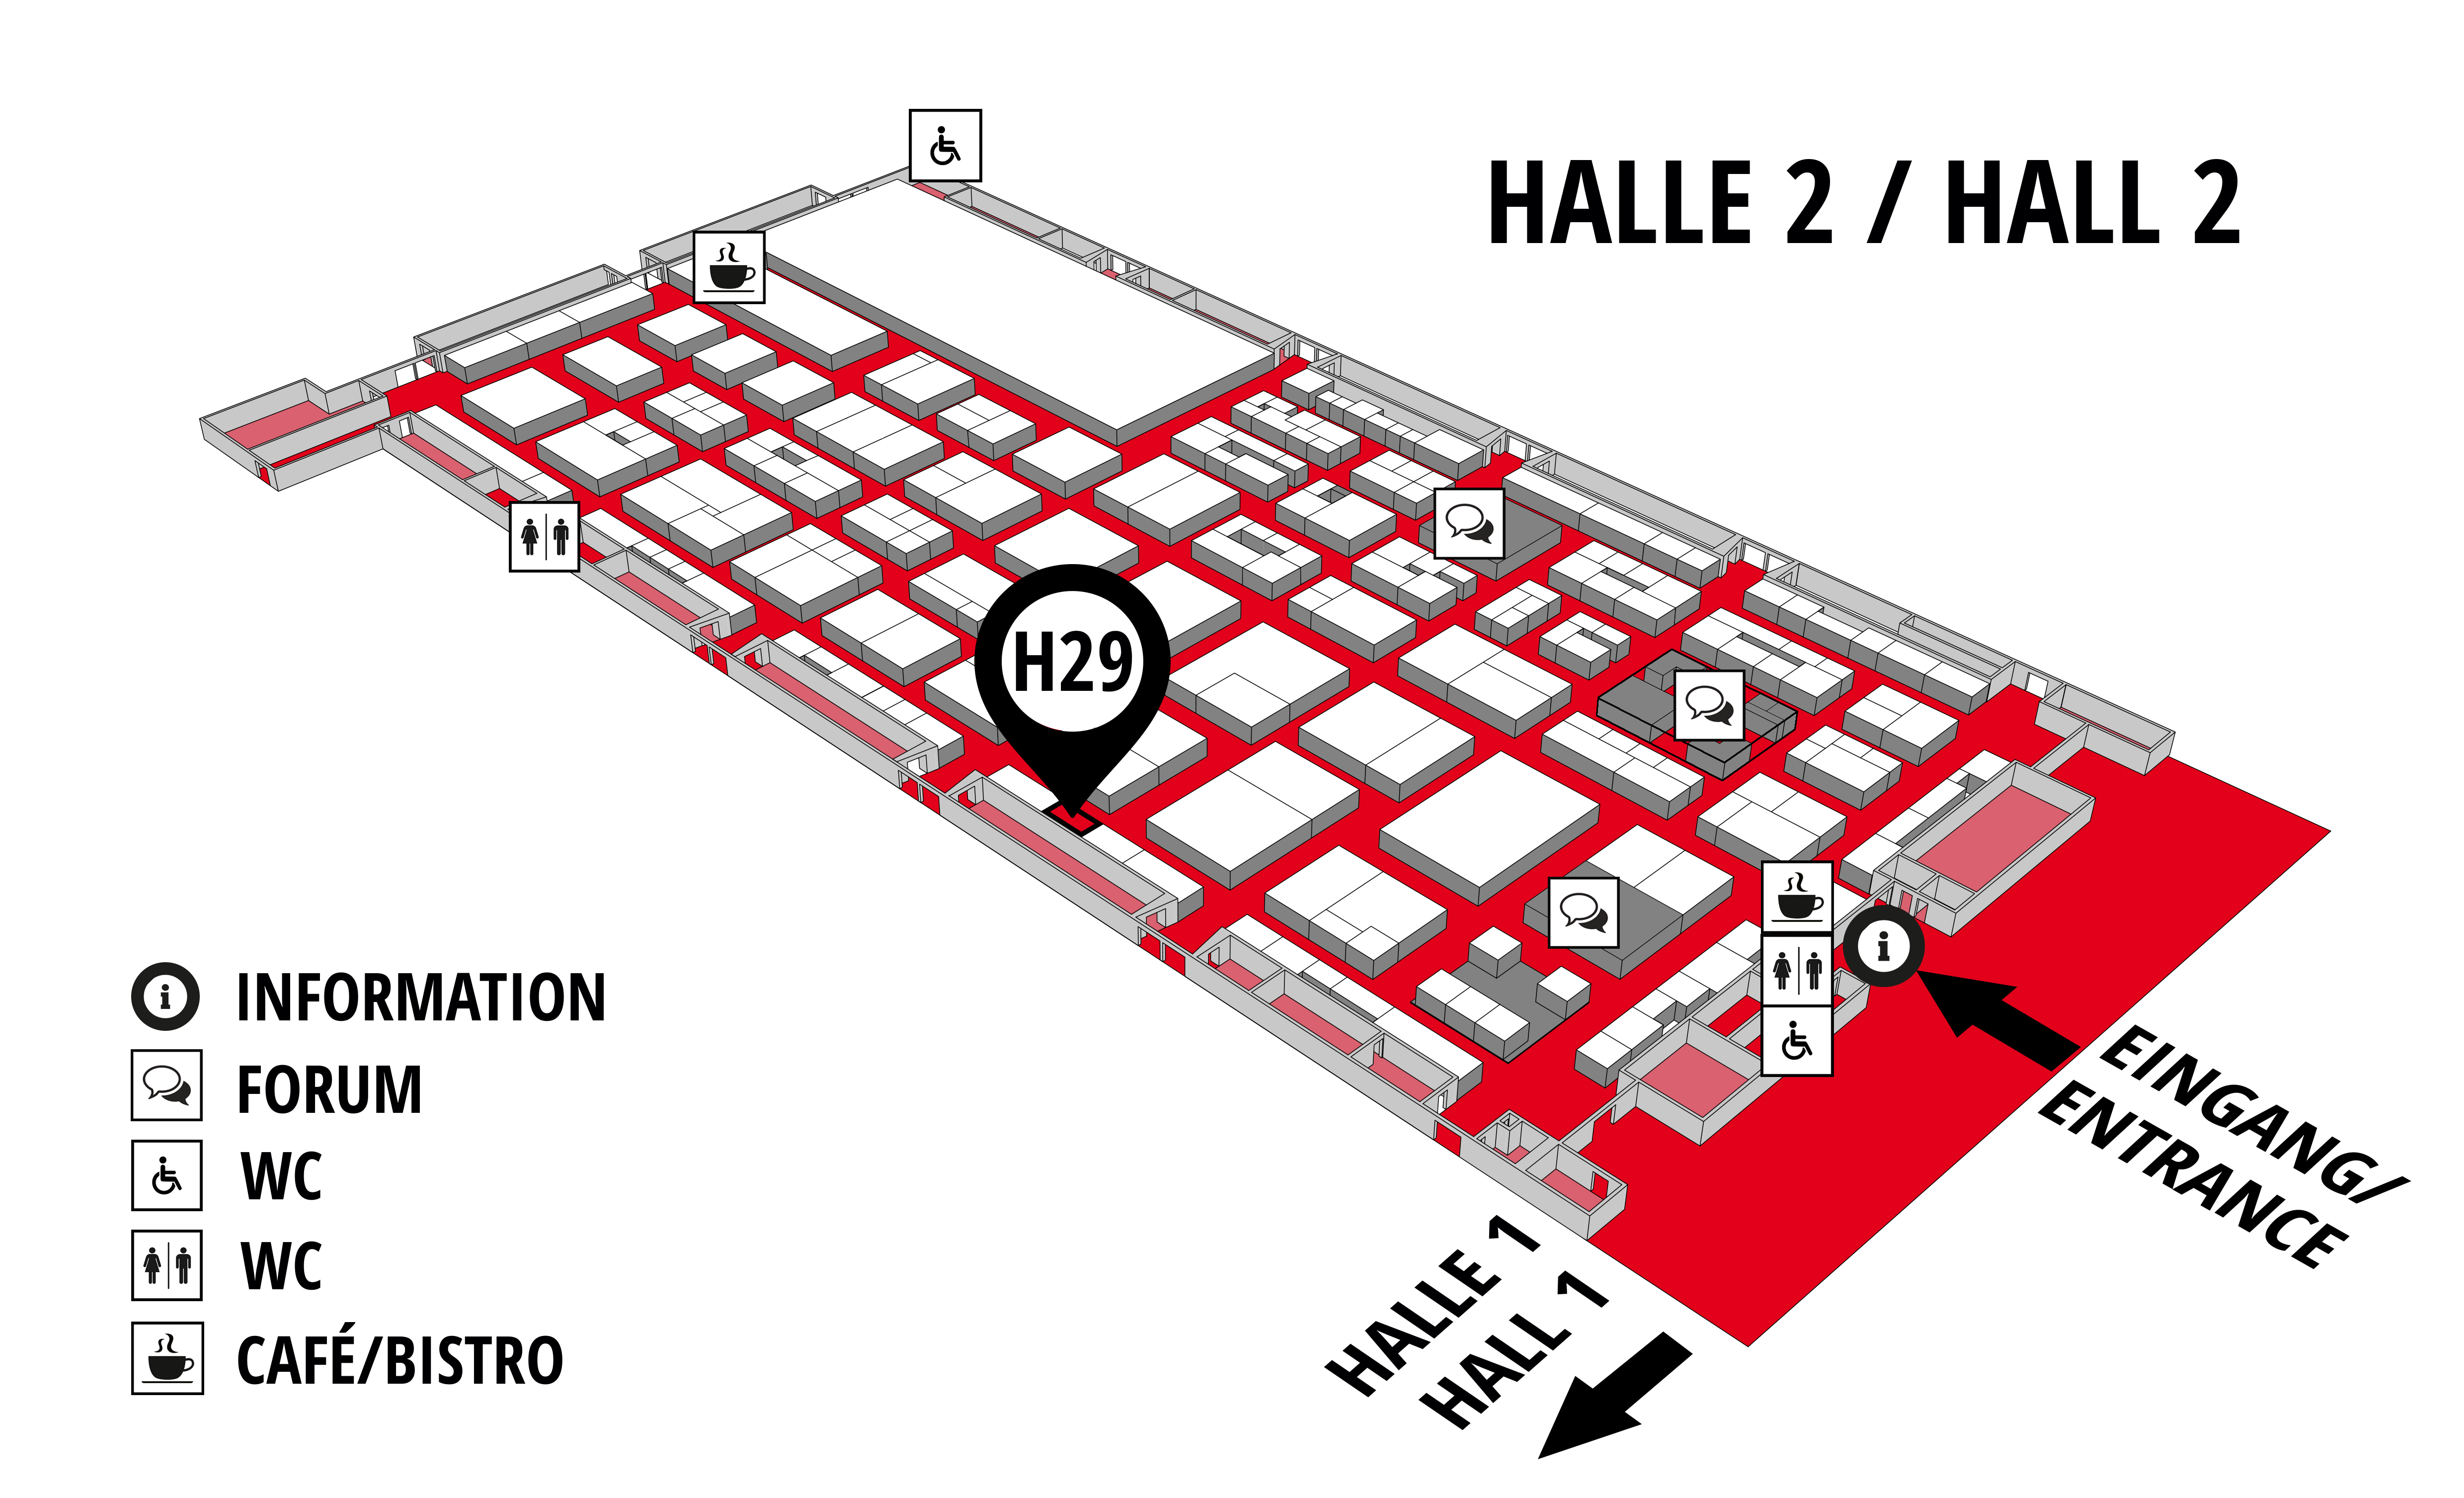 REHAB - Rehabilitation | Therapy | Care | Inclusion hall map (Hall 2): stand H29